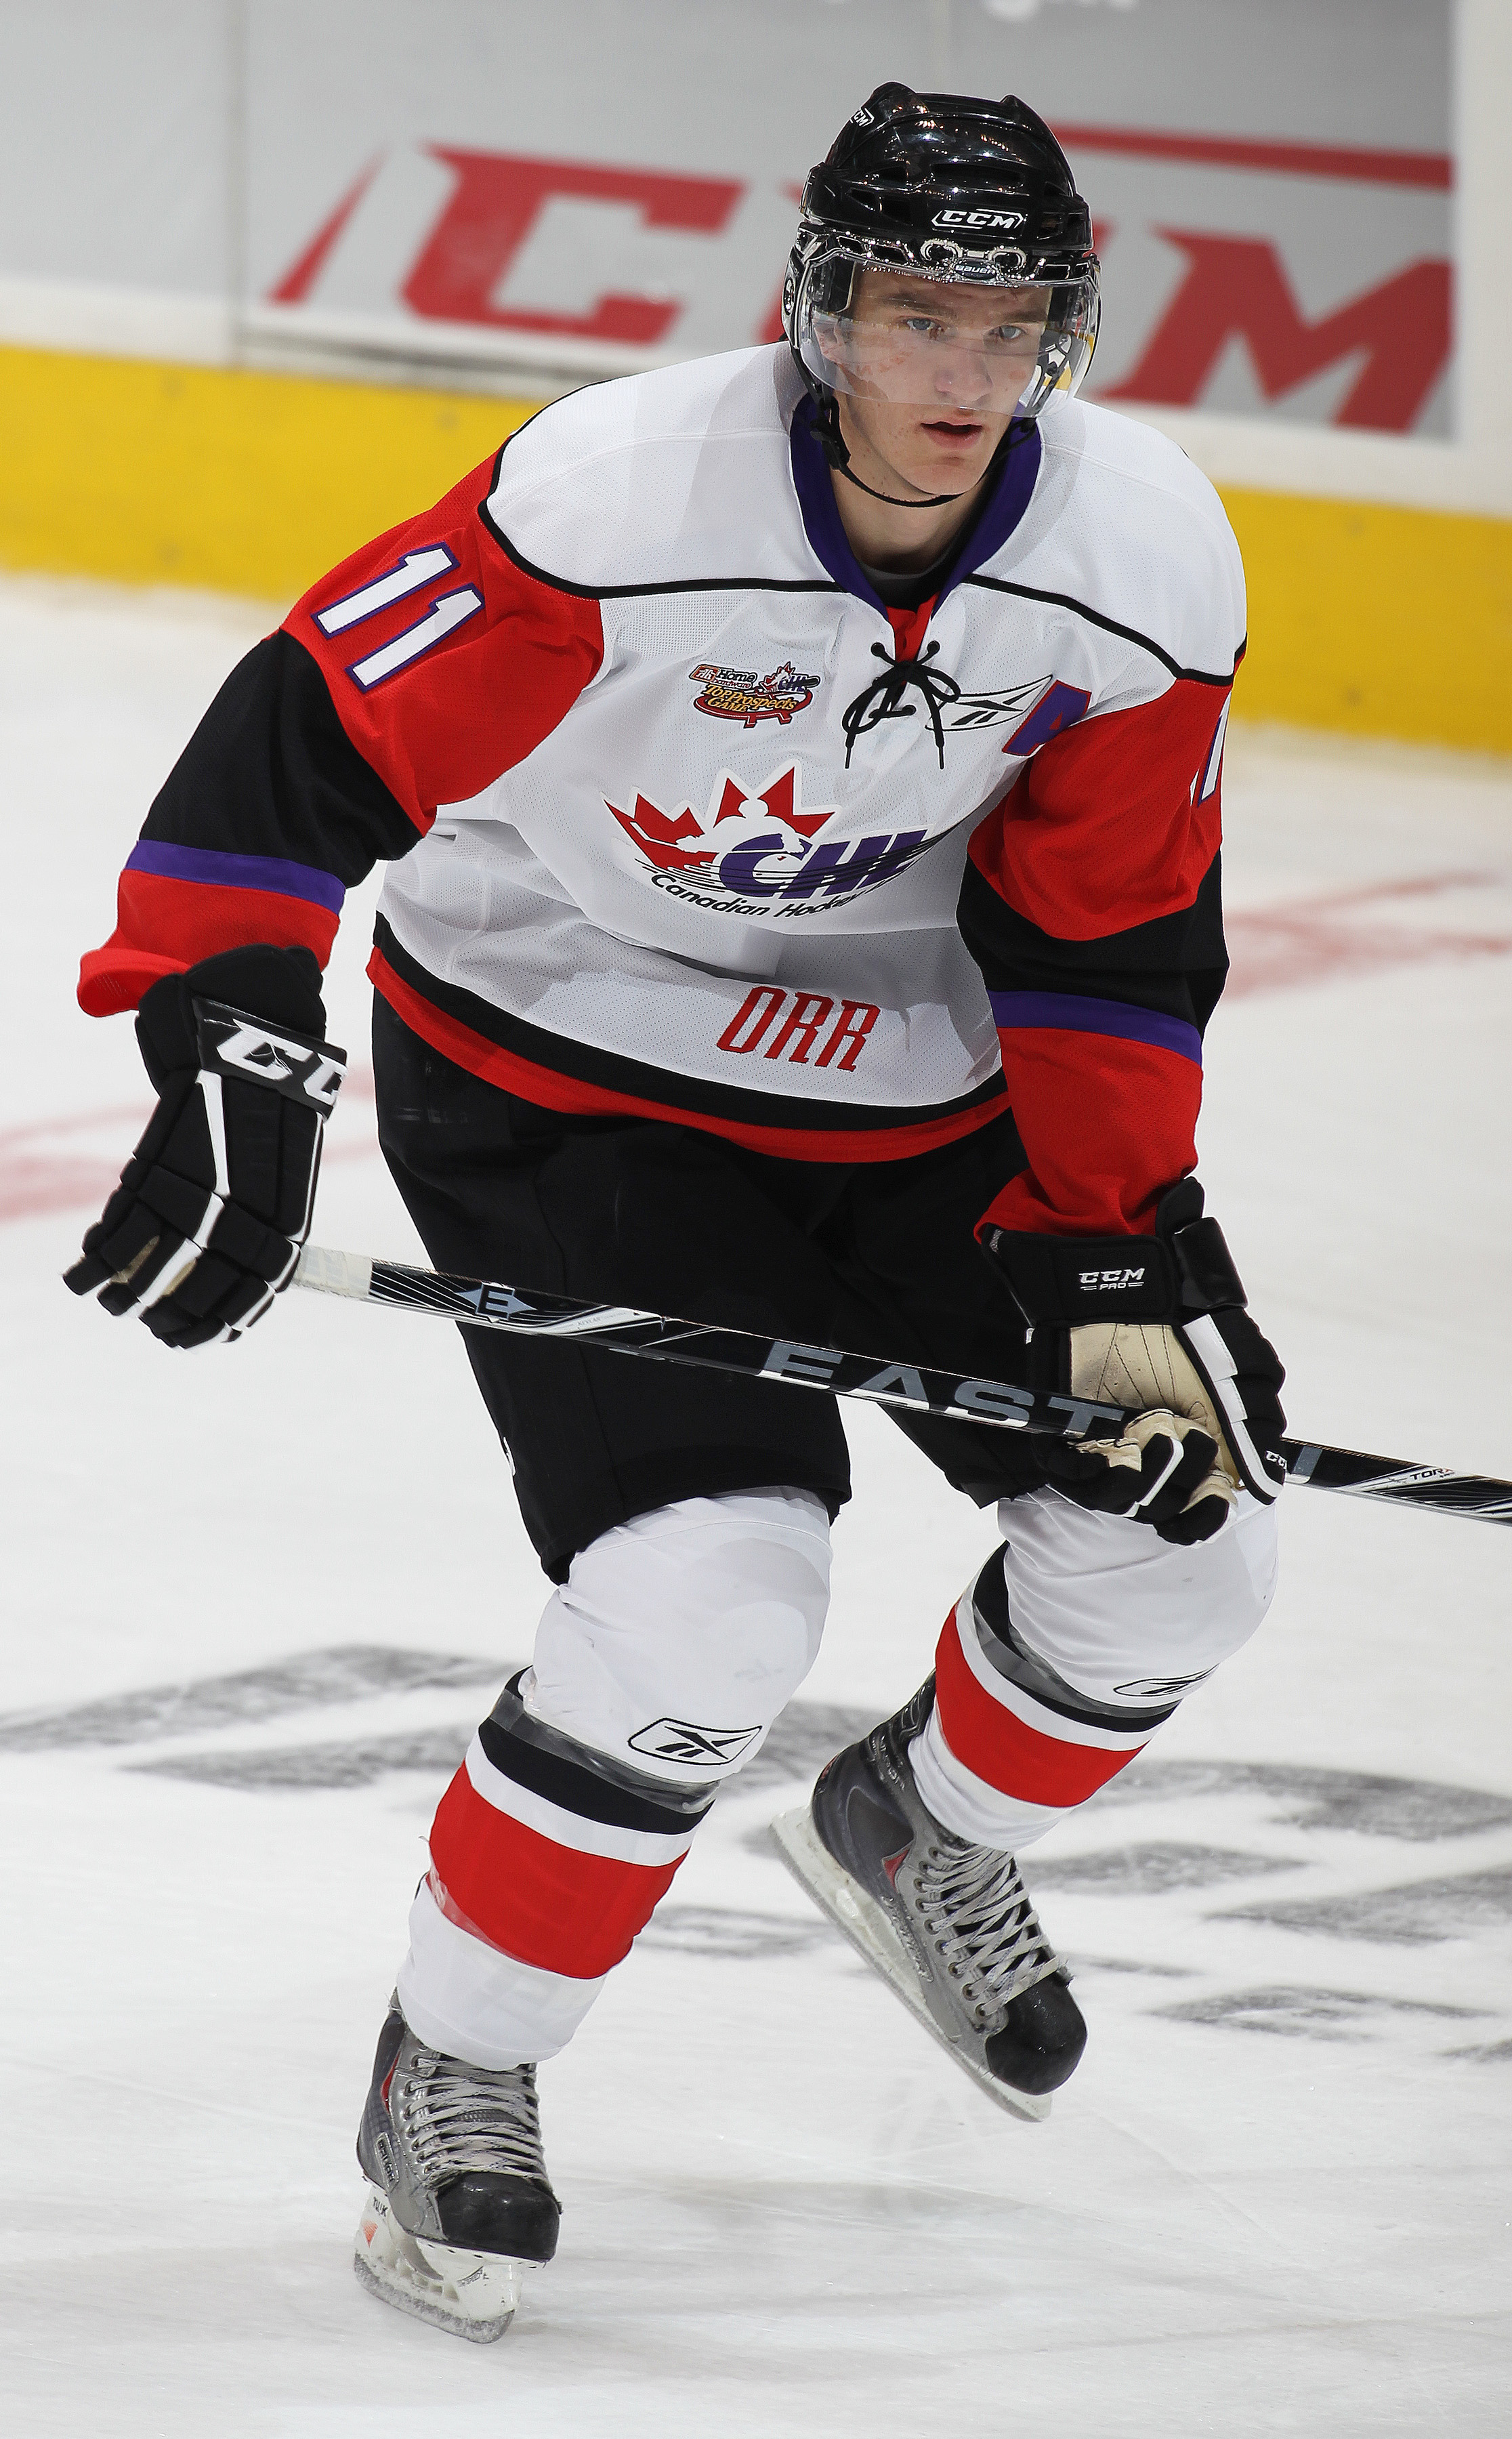 TORONTO, CAN - JANUARY 19:  Jonathan Huberdeau #11 of Team Orr skates against Team Cherry in the 2011 Home Hardware Top Prospects game on January 19, 2011 at the Air Canada Centre in Toronto, Canada. Team Orr defeated Team Cherry 7-1. (Photo by Claus Ande